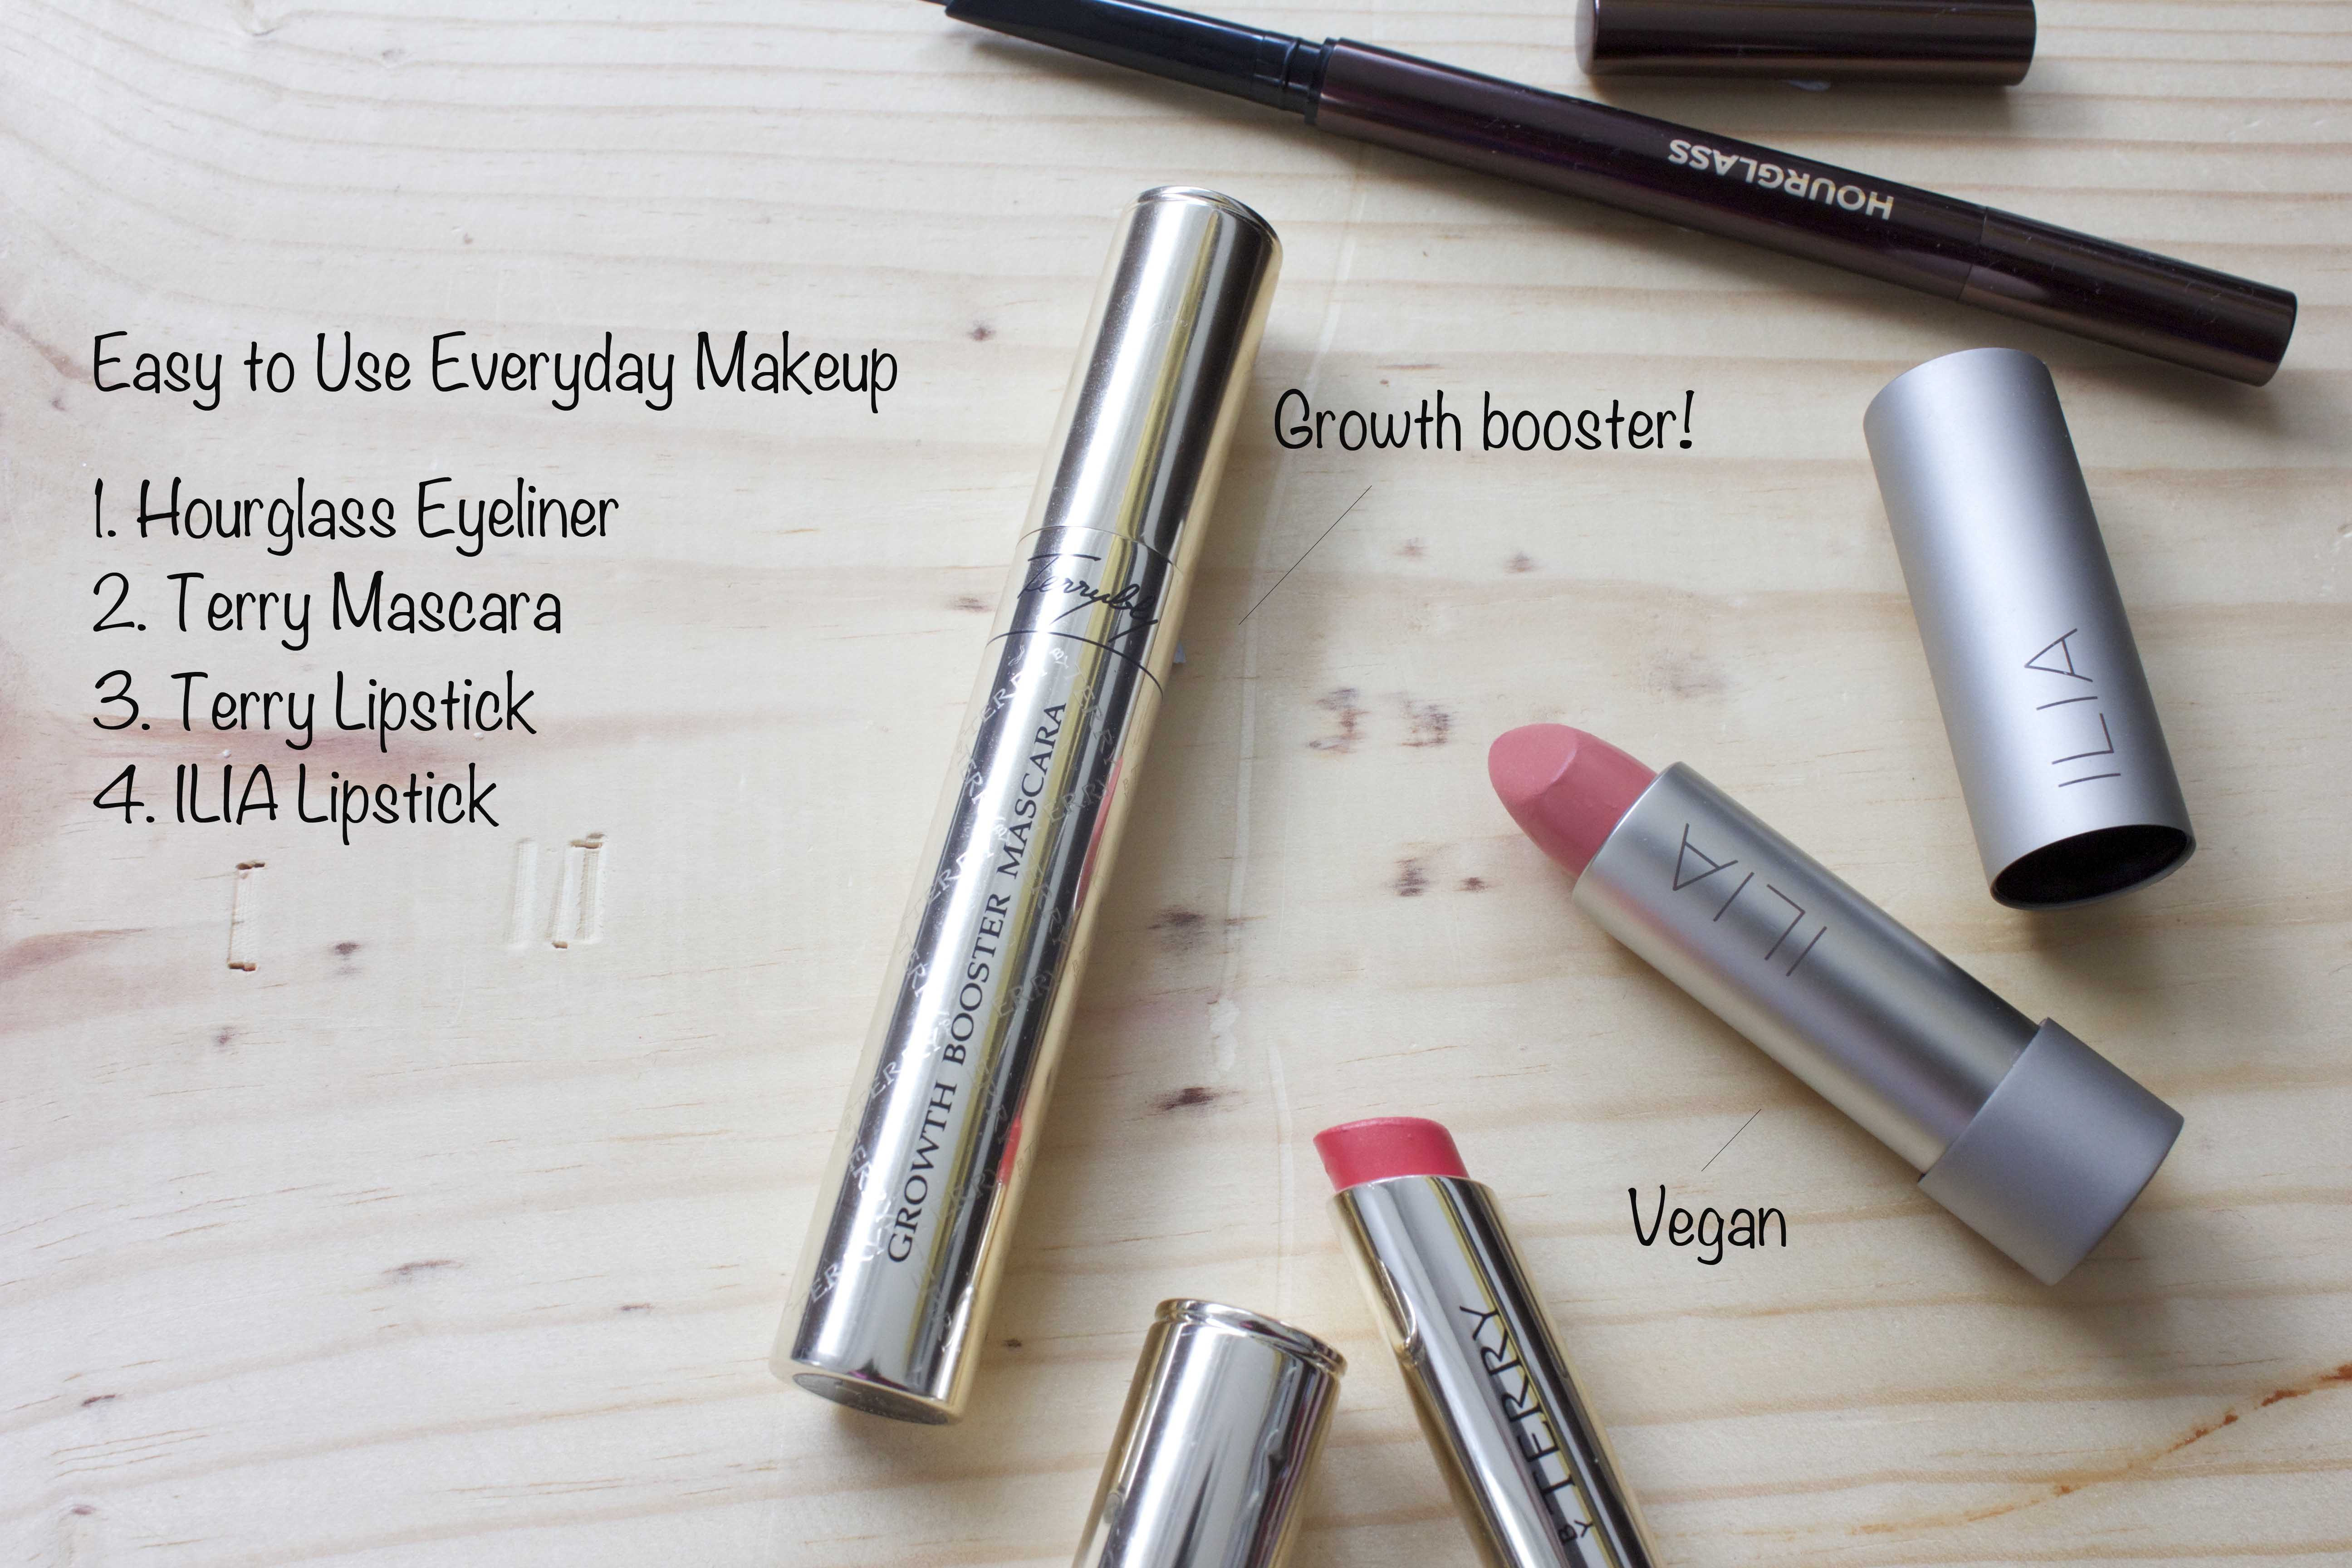 easy-to-use-makeup